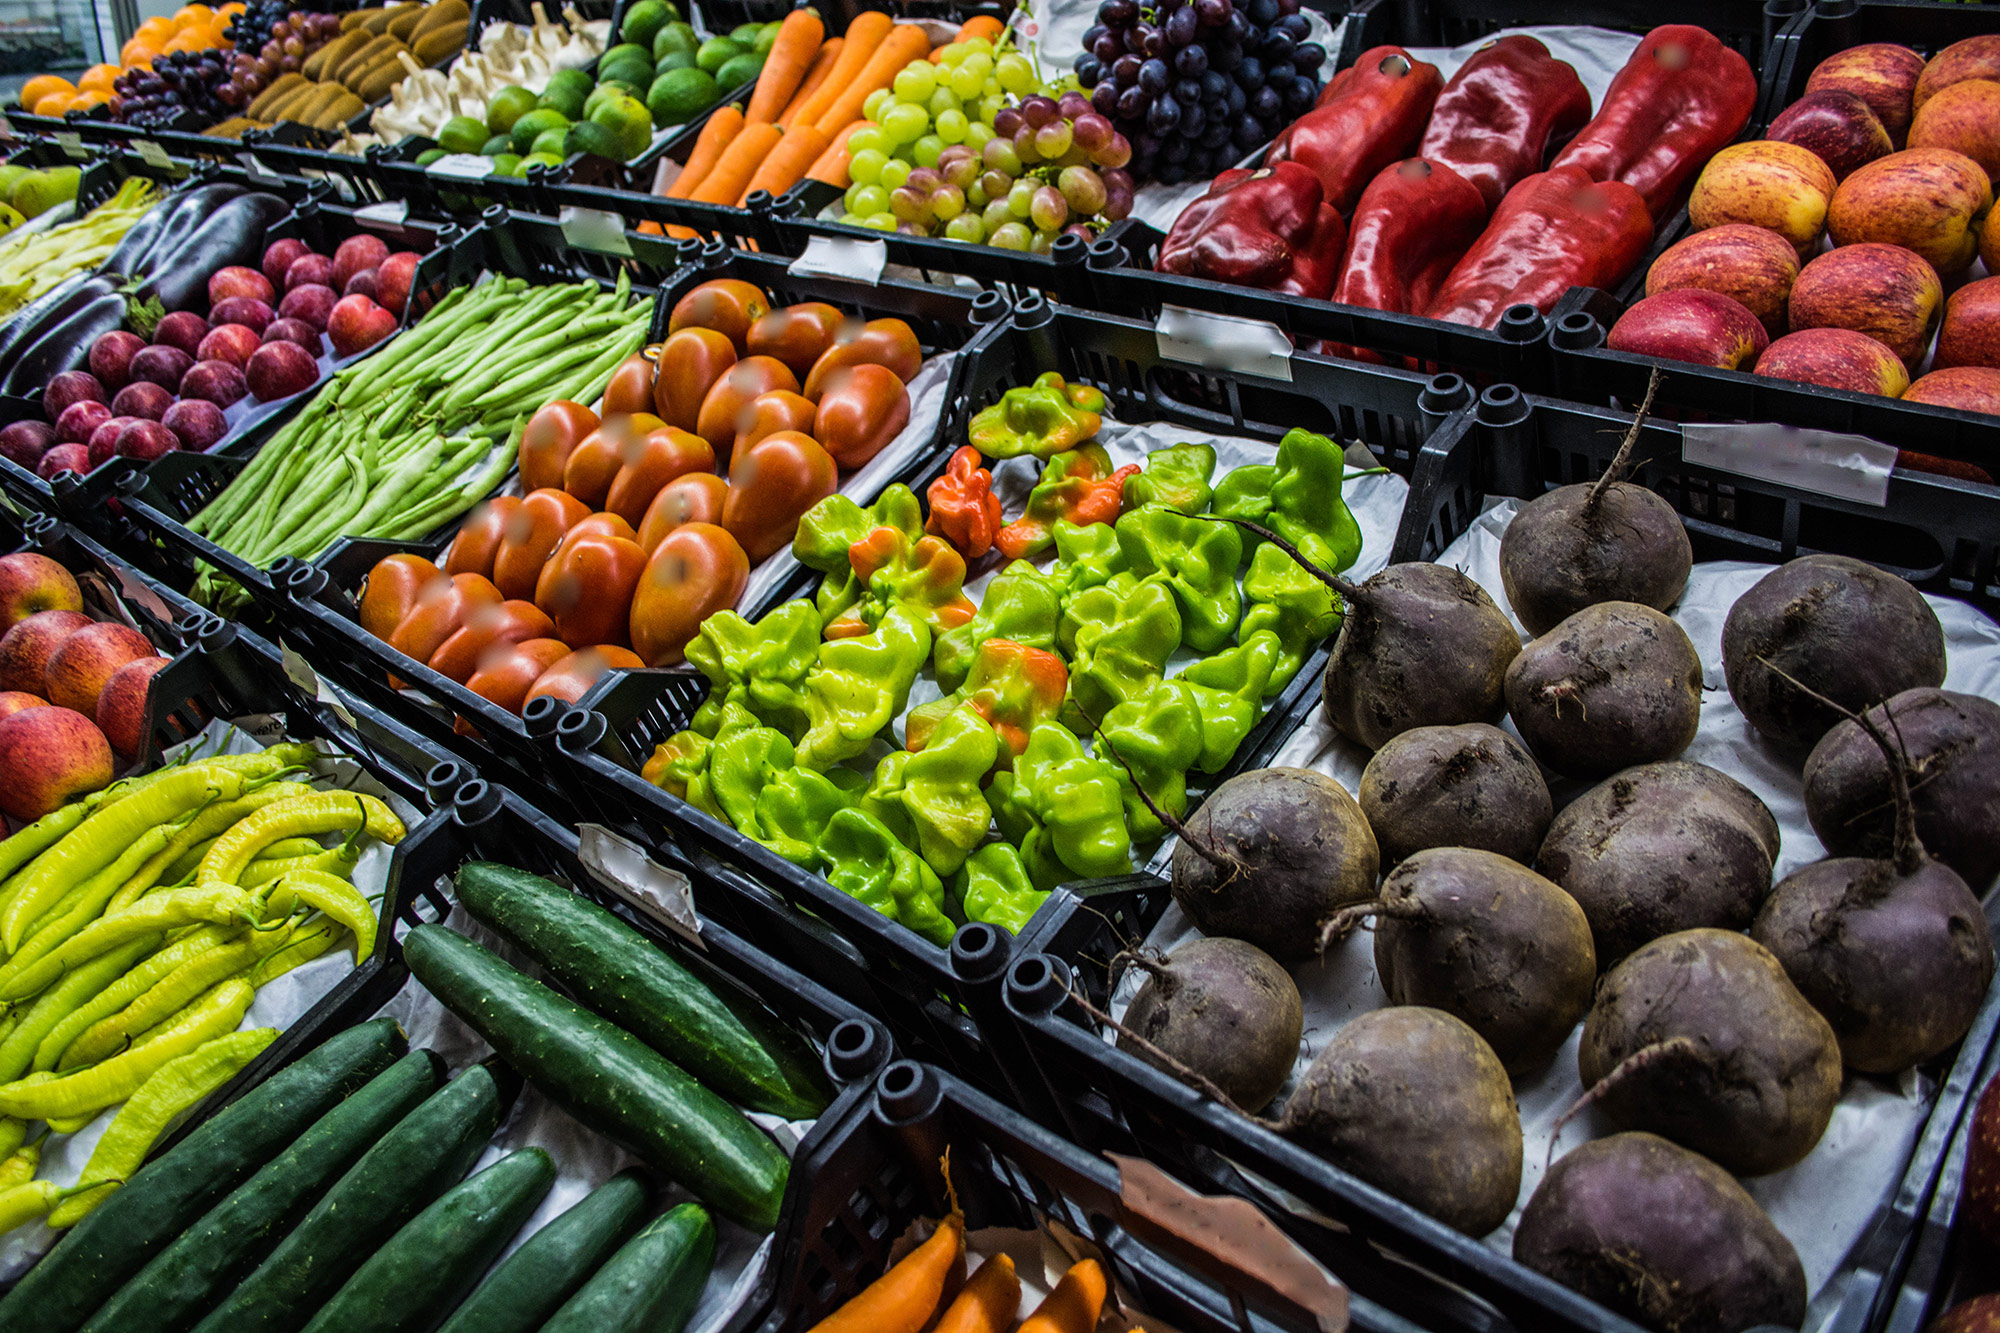 Fruits & Vegetables at a Grocery Store